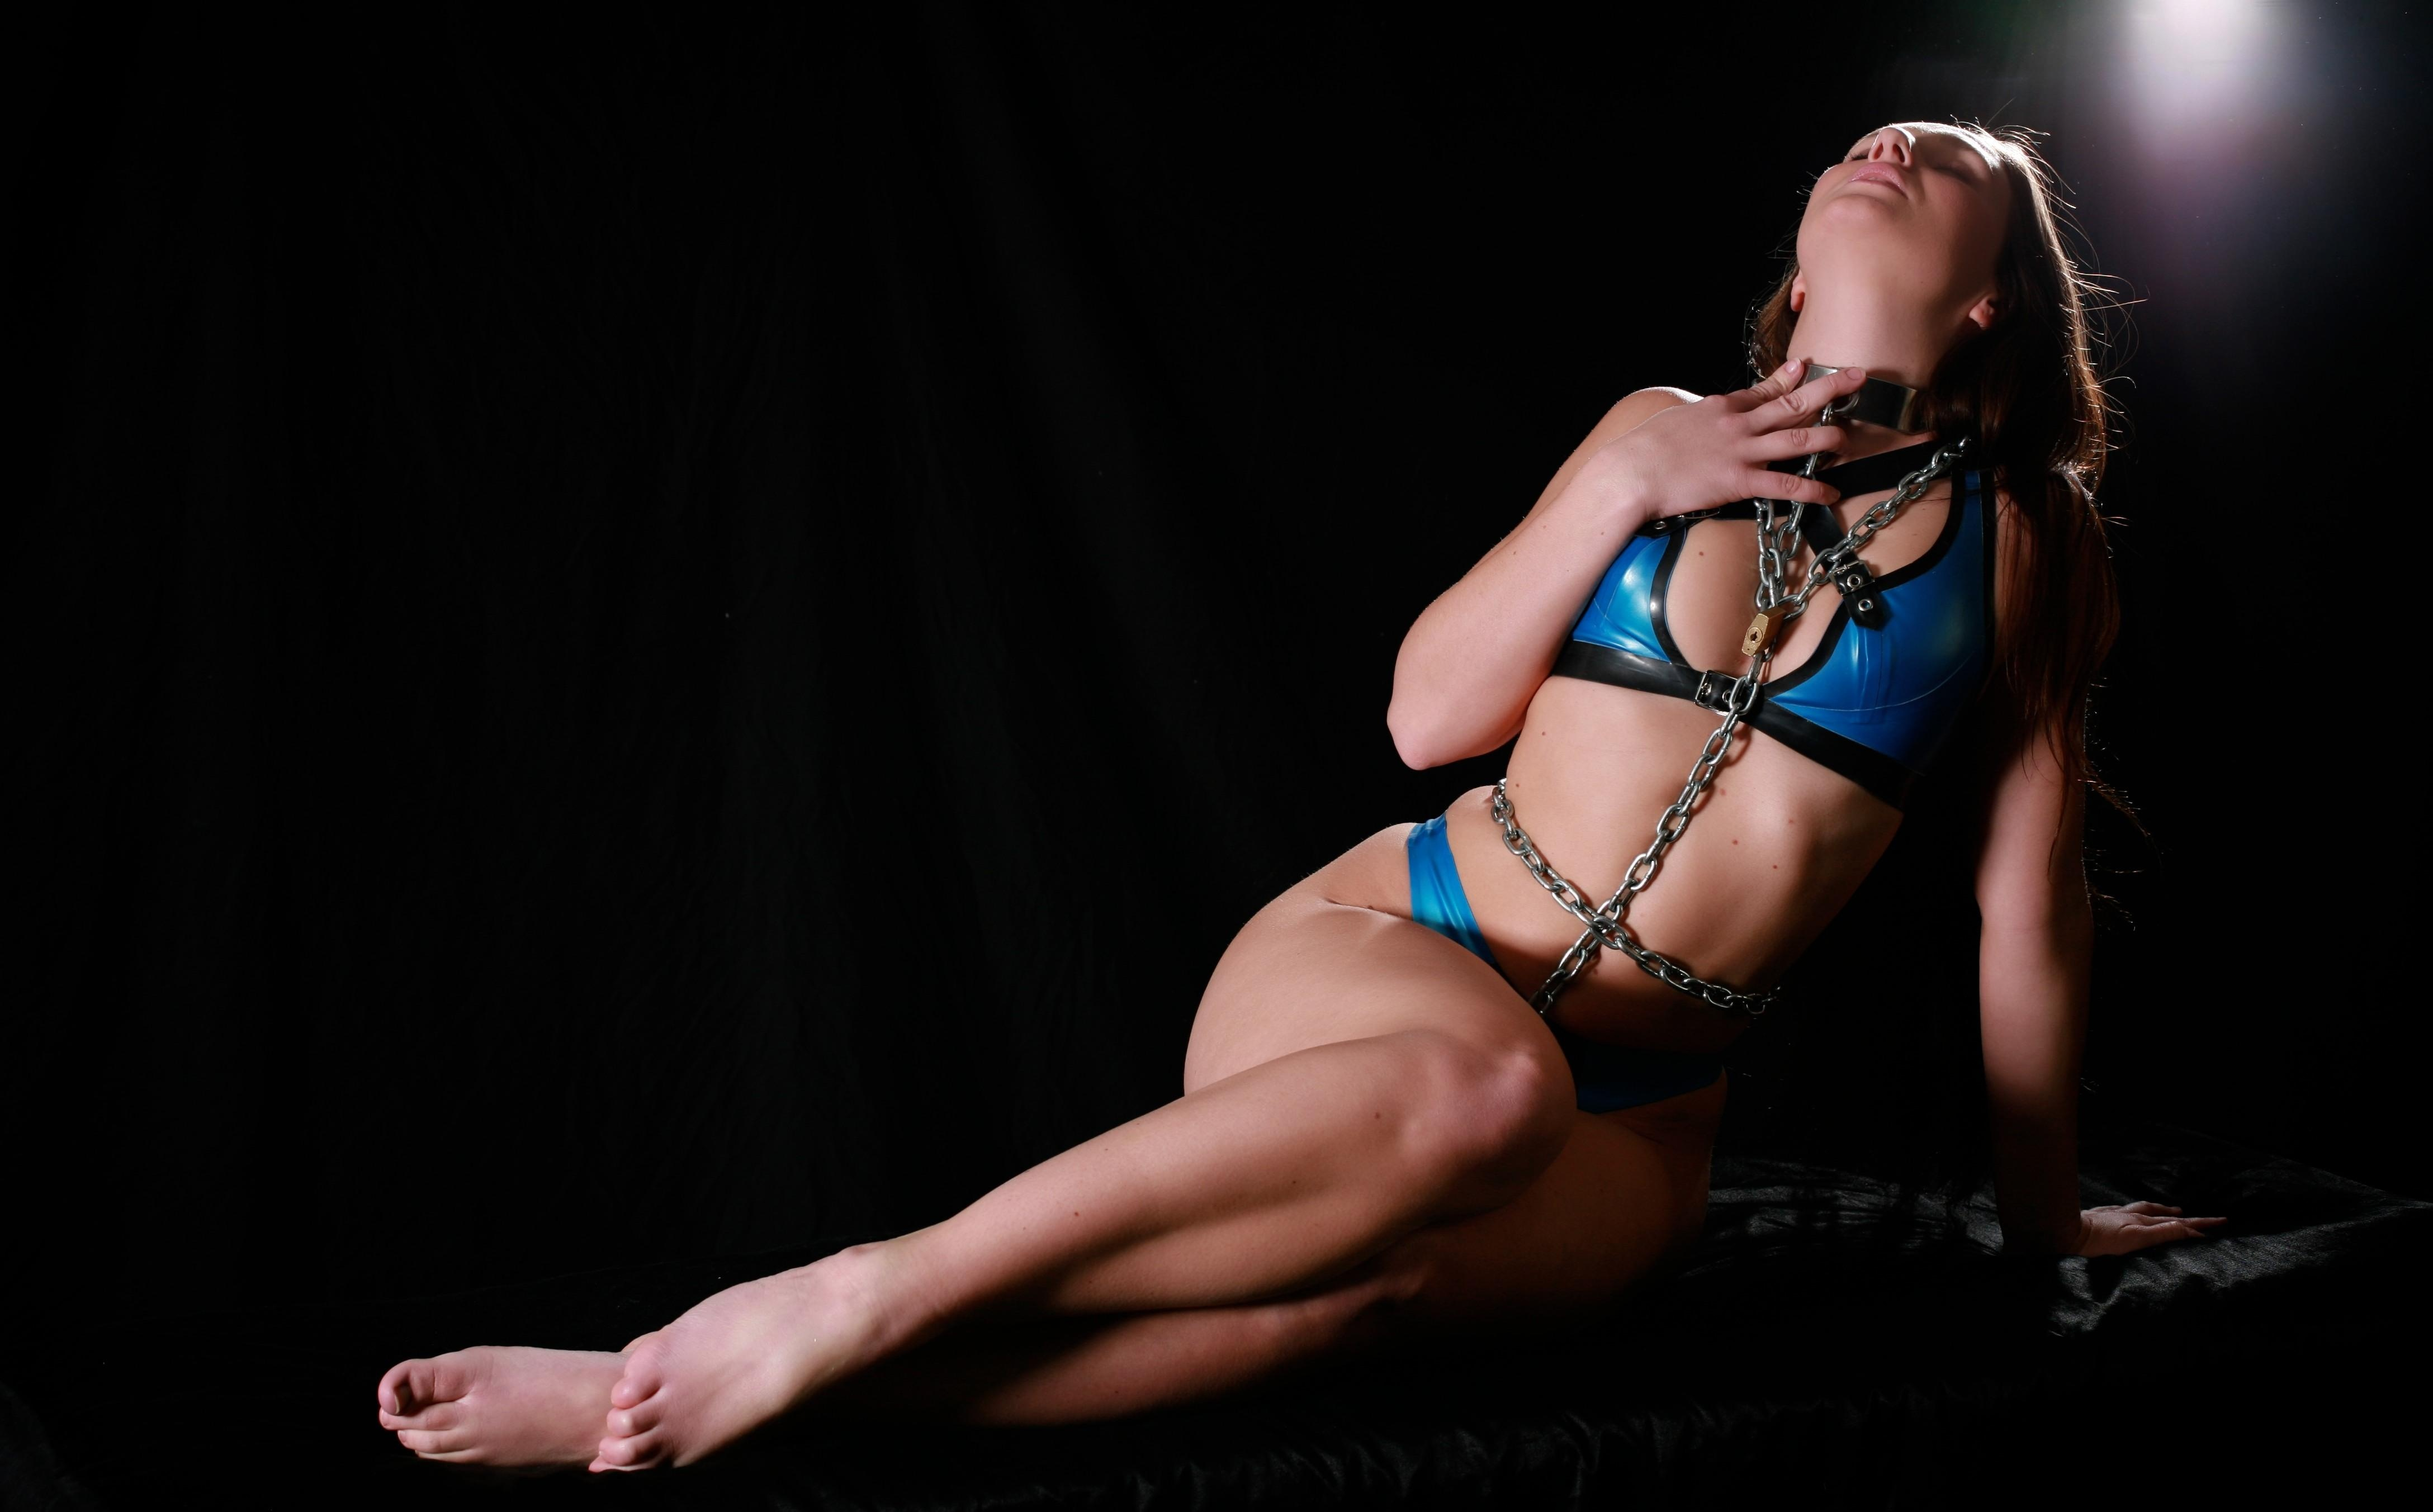 Clothed sexy girls in bondage has